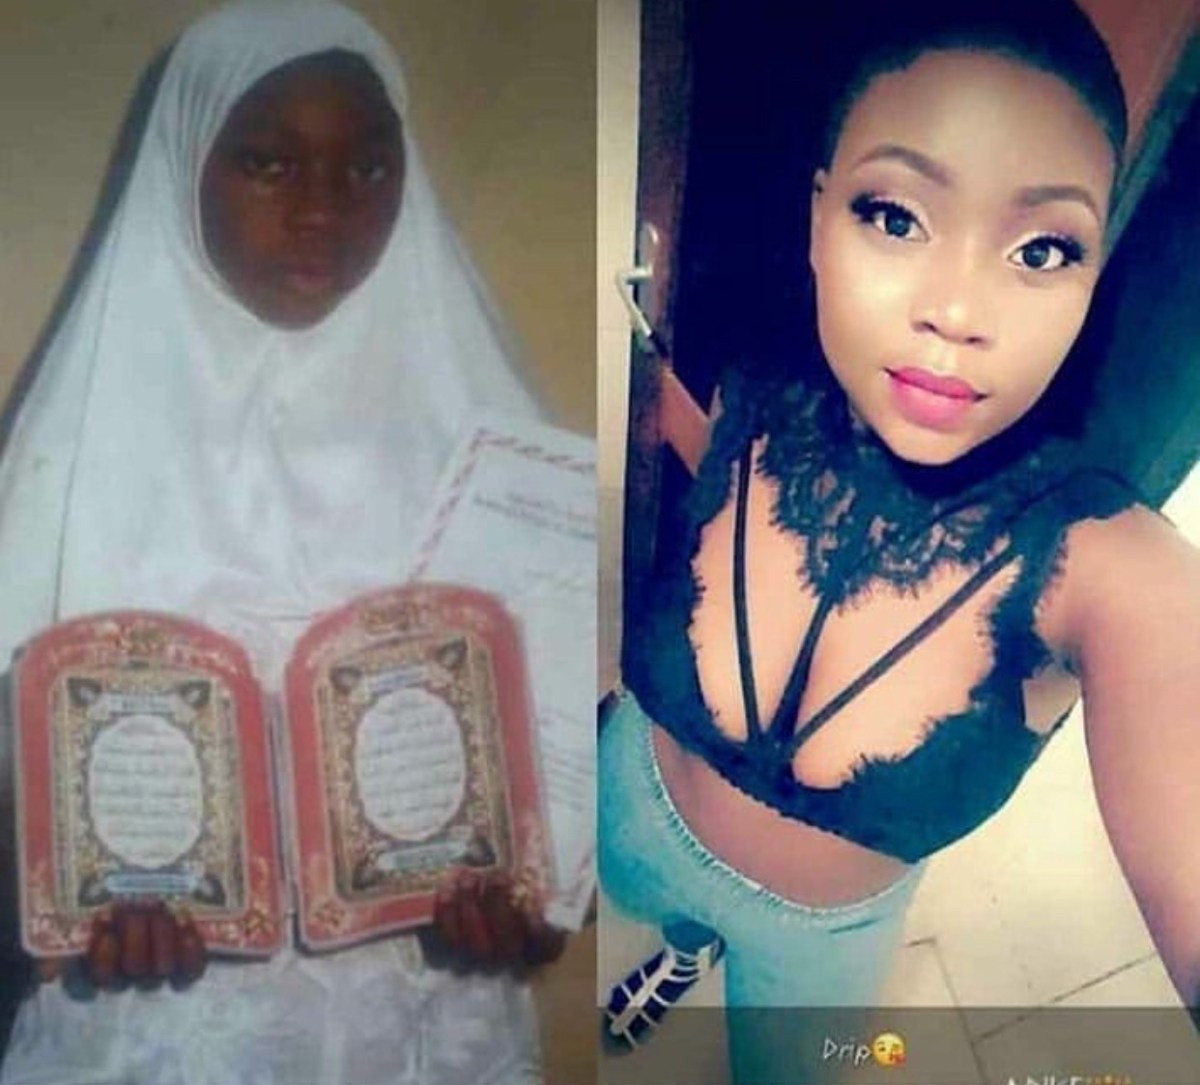 #10YearsChallenge - Hijab-Wearing Muslim Ladies Shock Online Users [Photos]